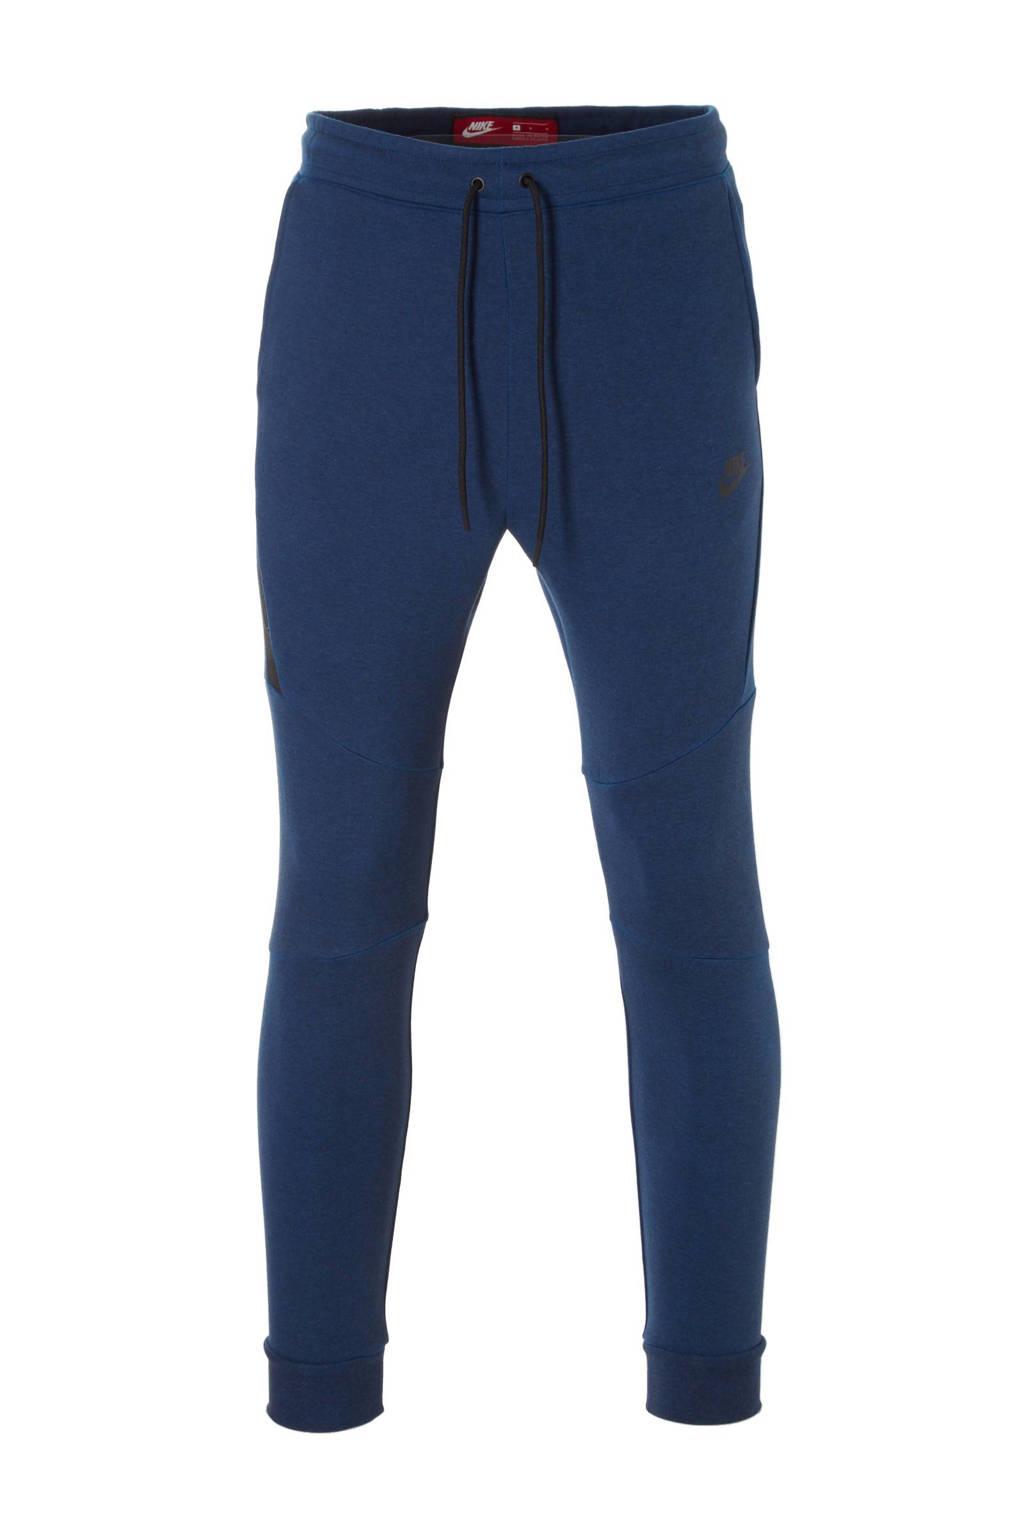 000d3b859b19 Nike Tech Fleece joggingbroek